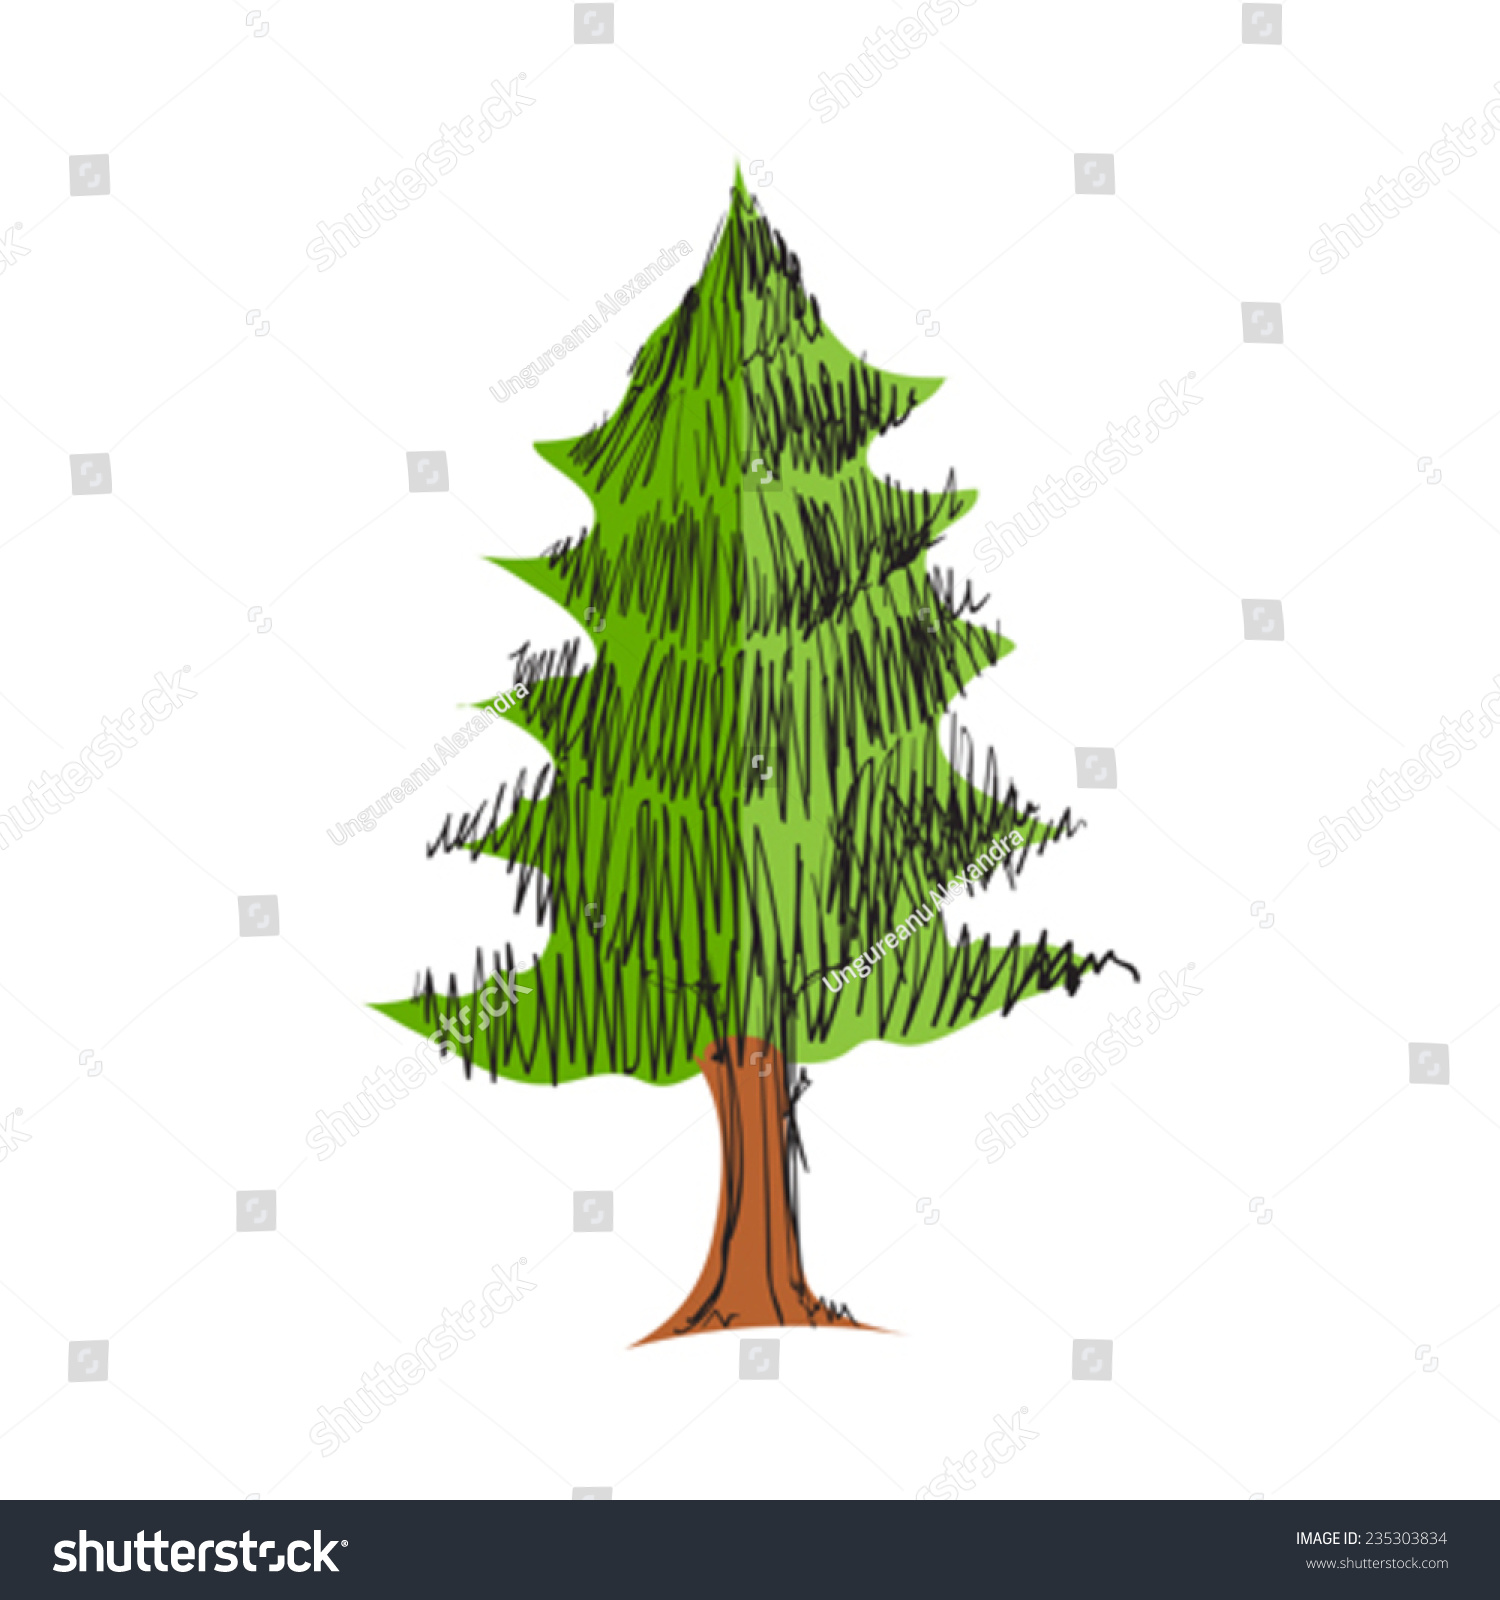 Uncategorized Pine Tree Sketch illustration pine tree sketch isolated on stock vector 235303834 of white background